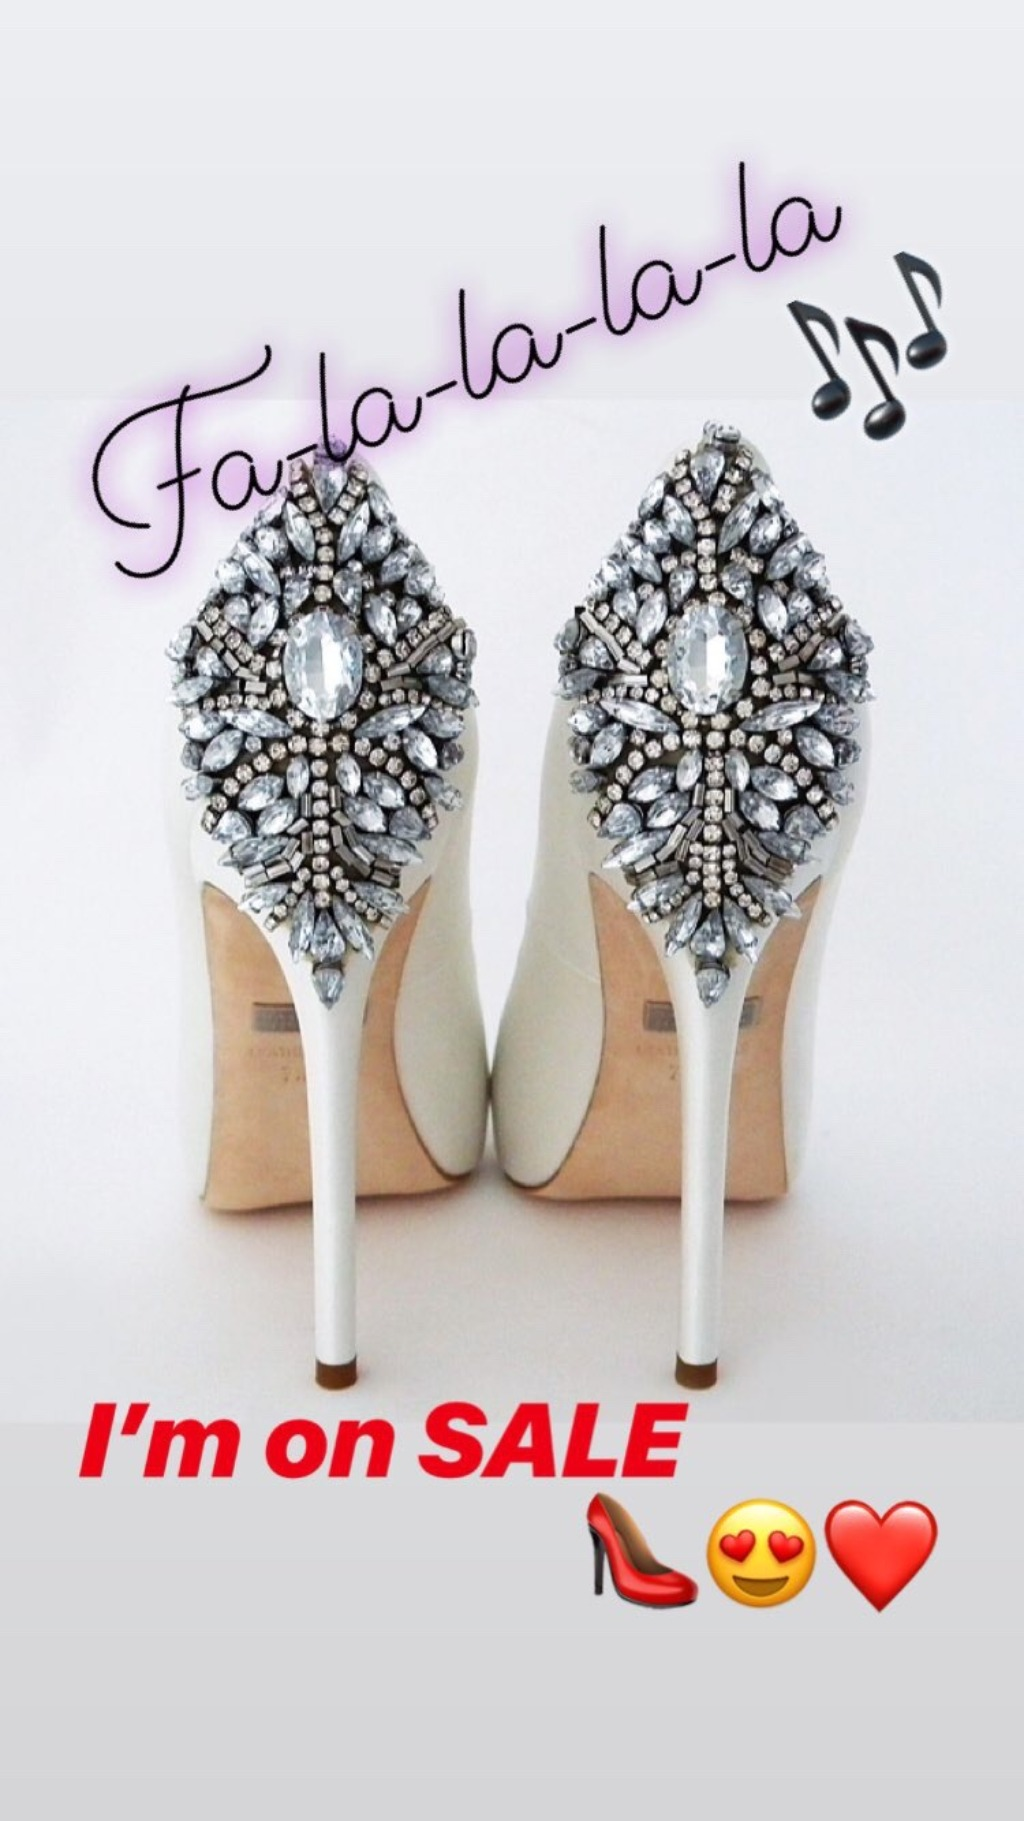 New Shoes on SALE!